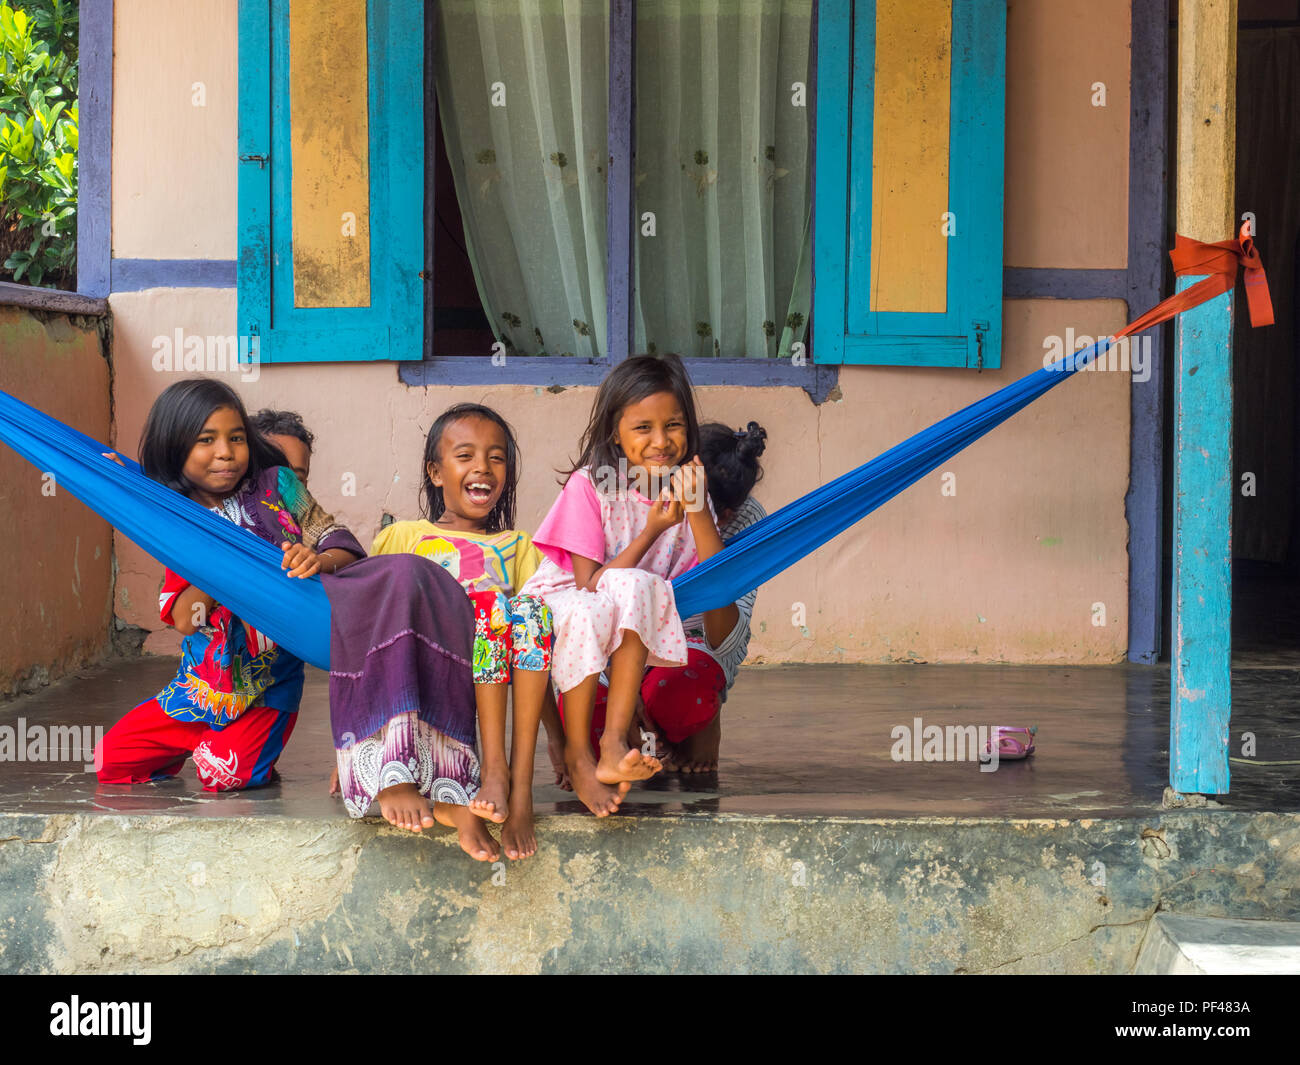 Ambon, Indonesia - February 11, 2018: A group of young Indonesian girls,